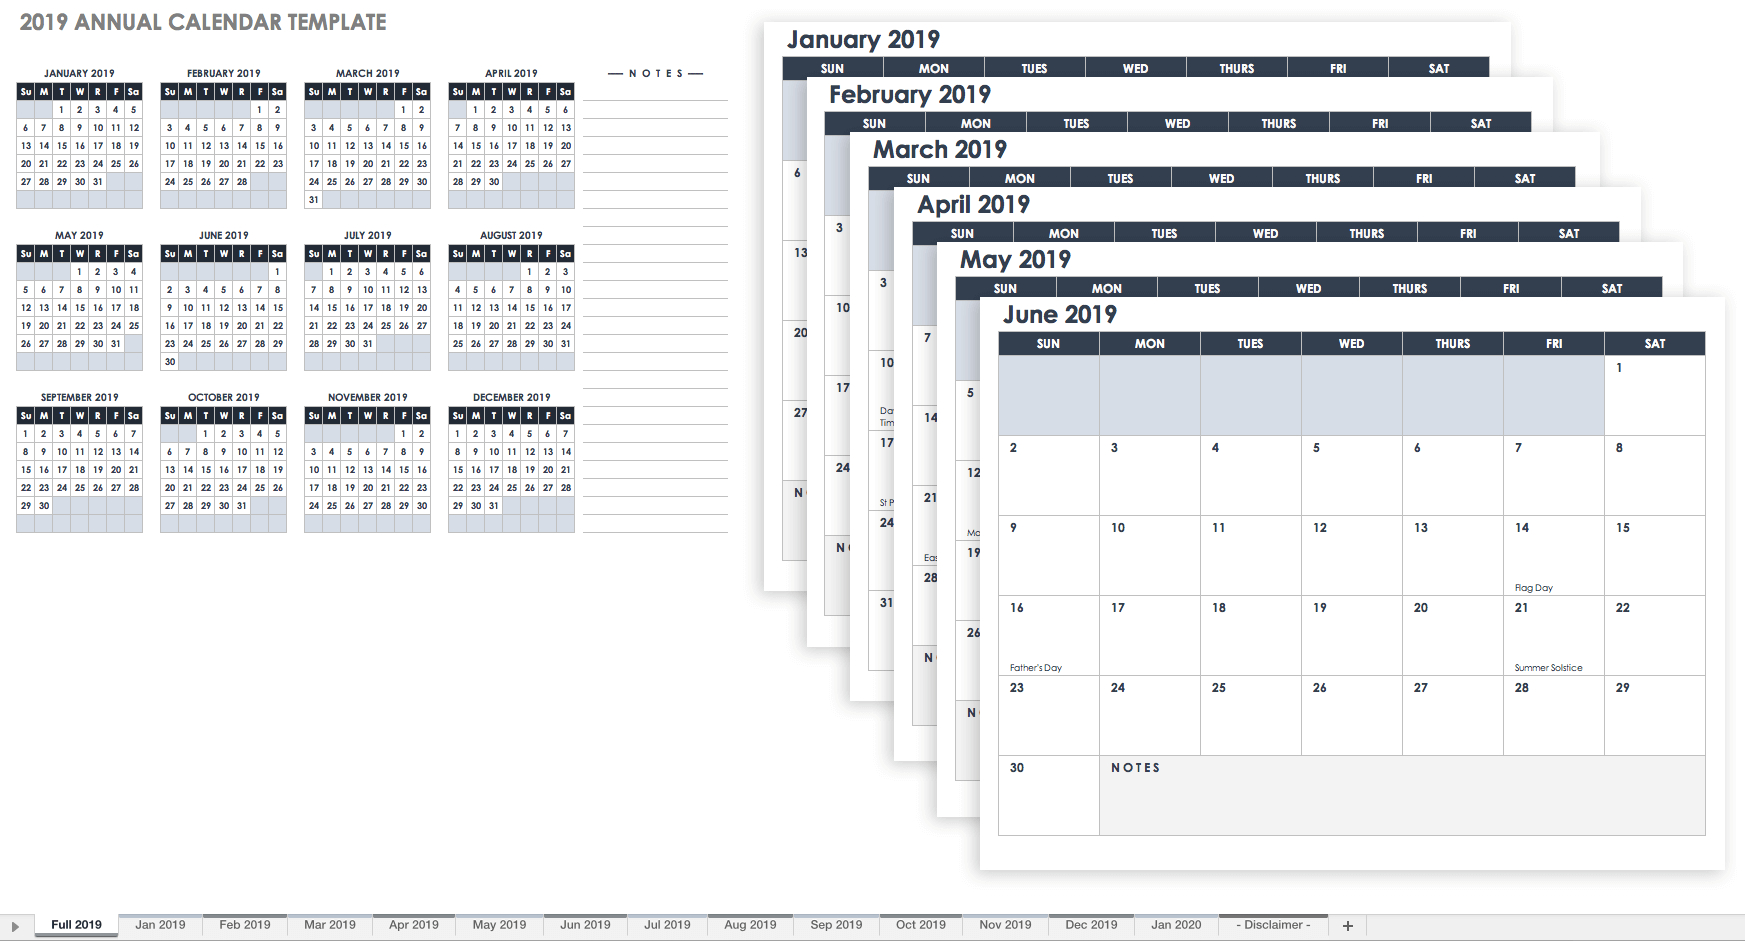 15 Free Monthly Calendar Templates | Smartsheet intended for Cute Blank Monthly Calendar Template